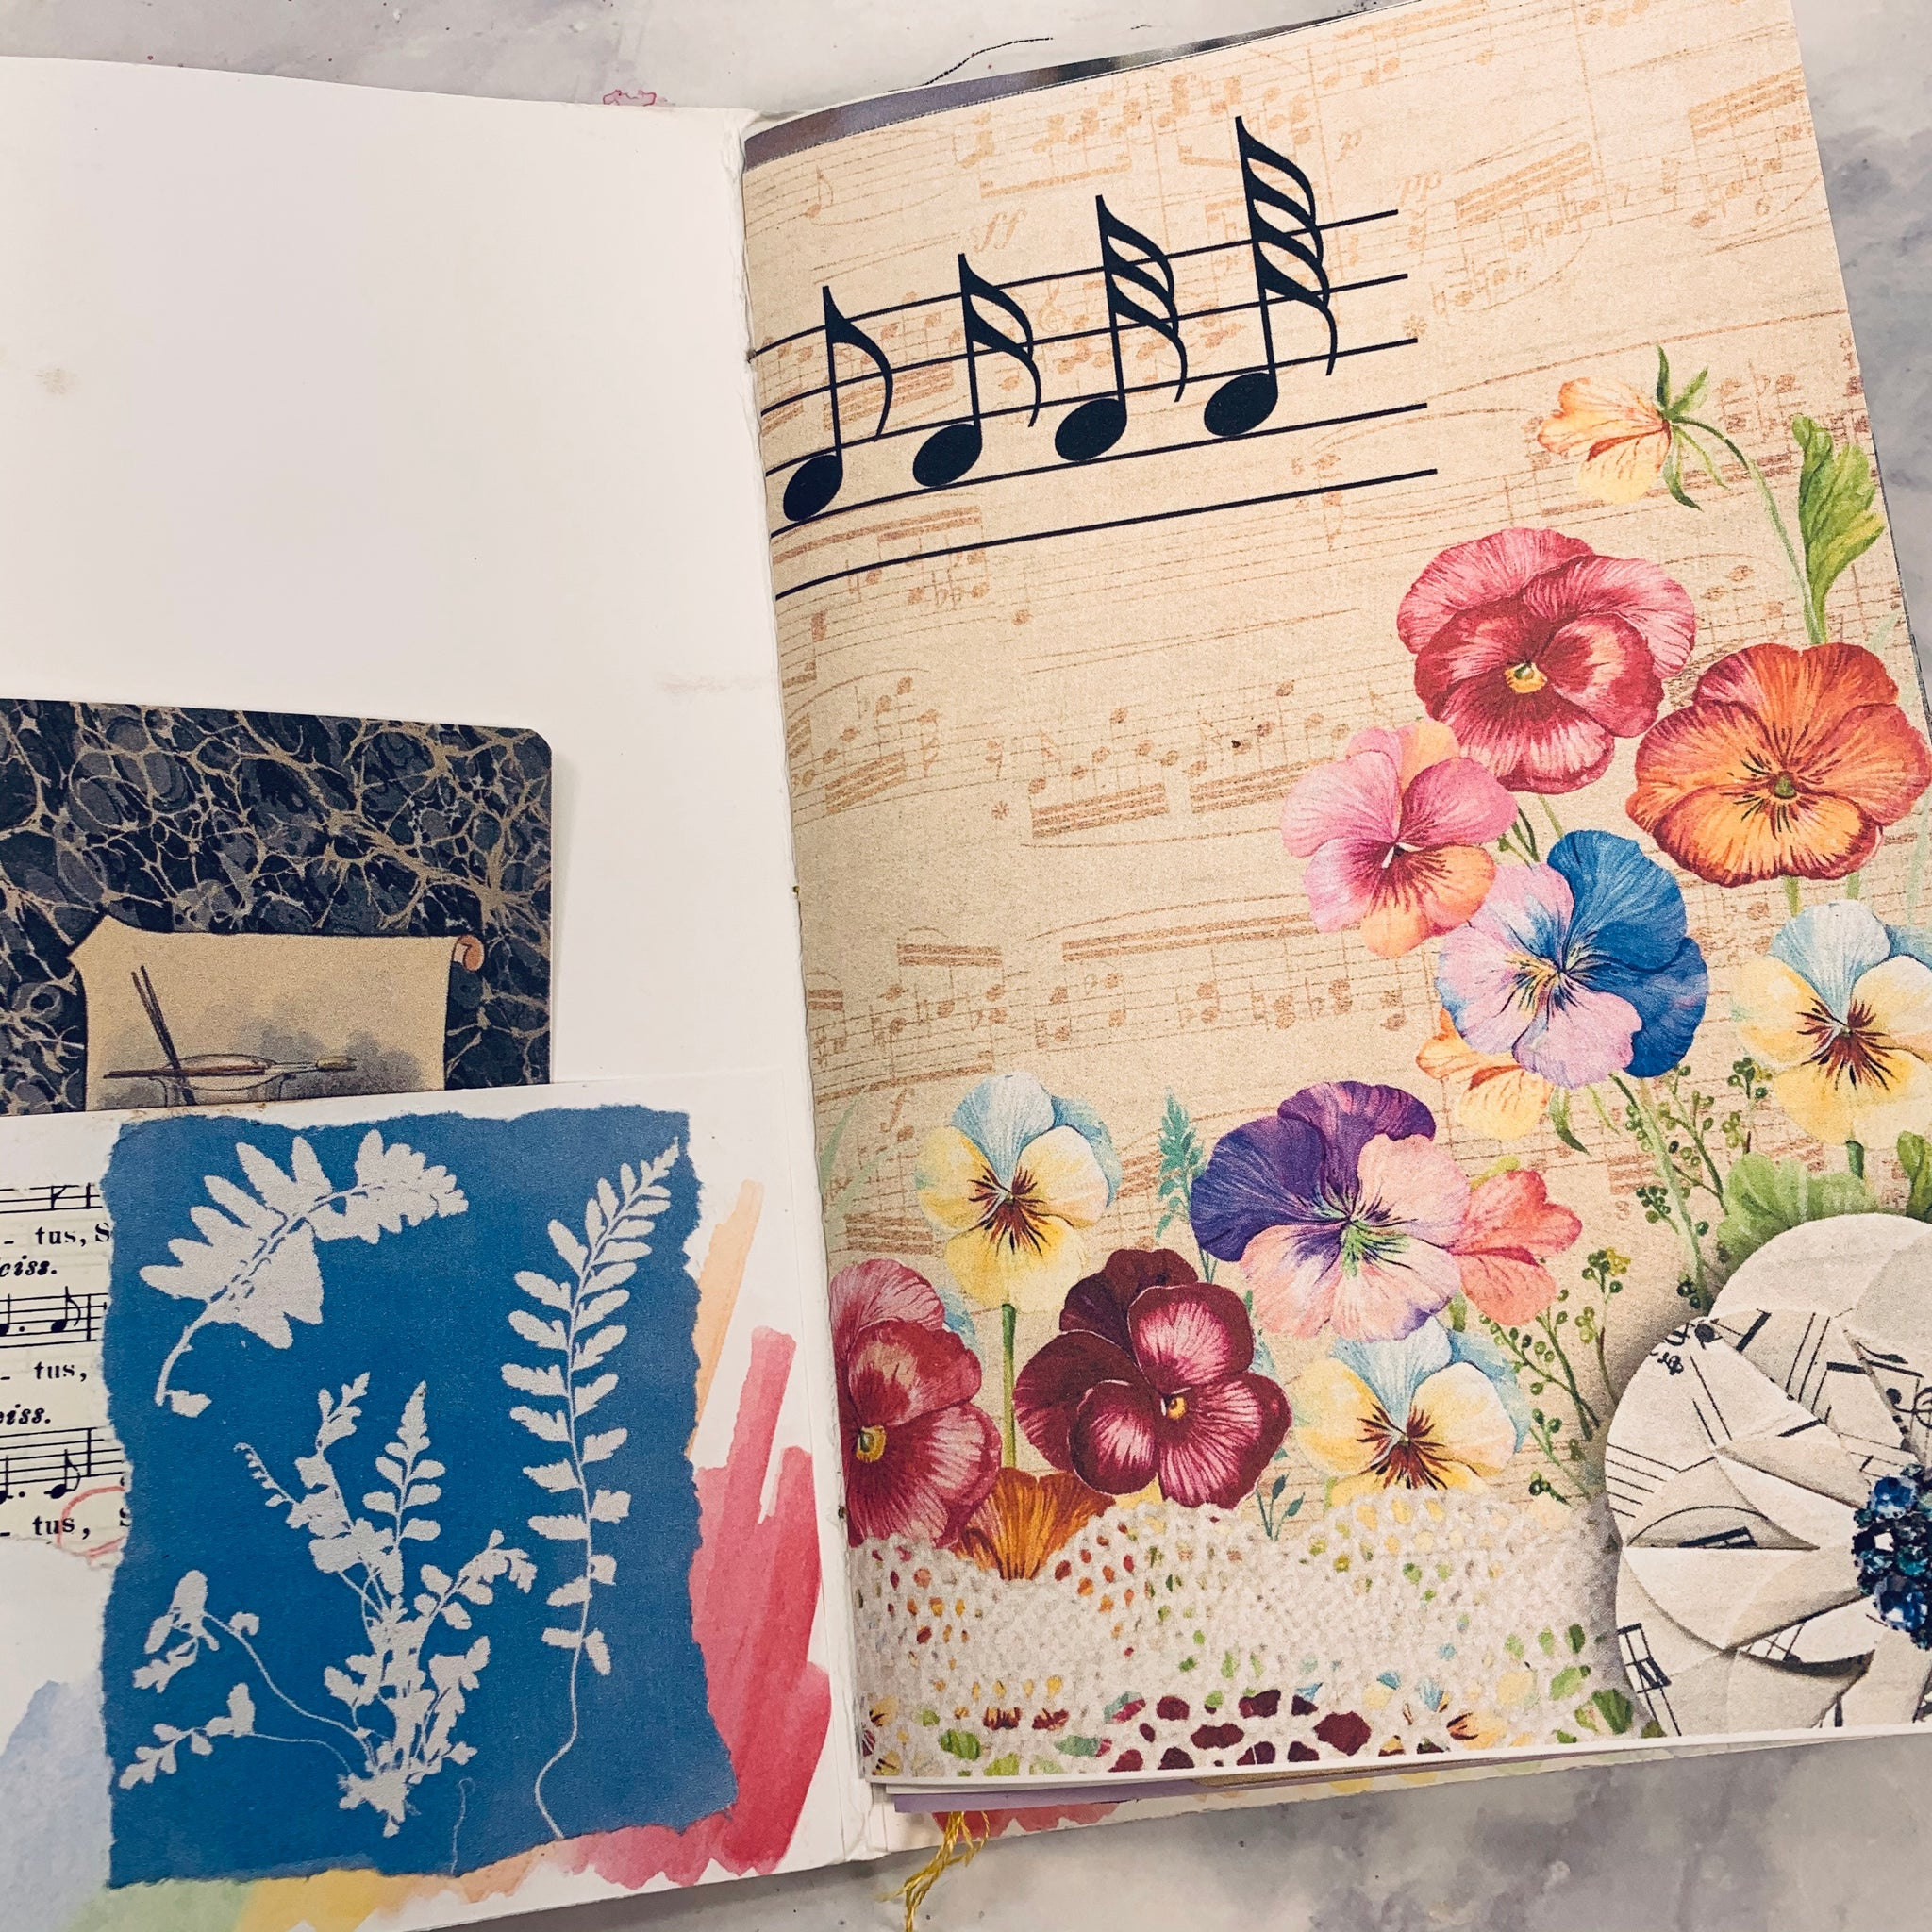 Song 2 Junk Journal by Barb Plude (March Challenge)